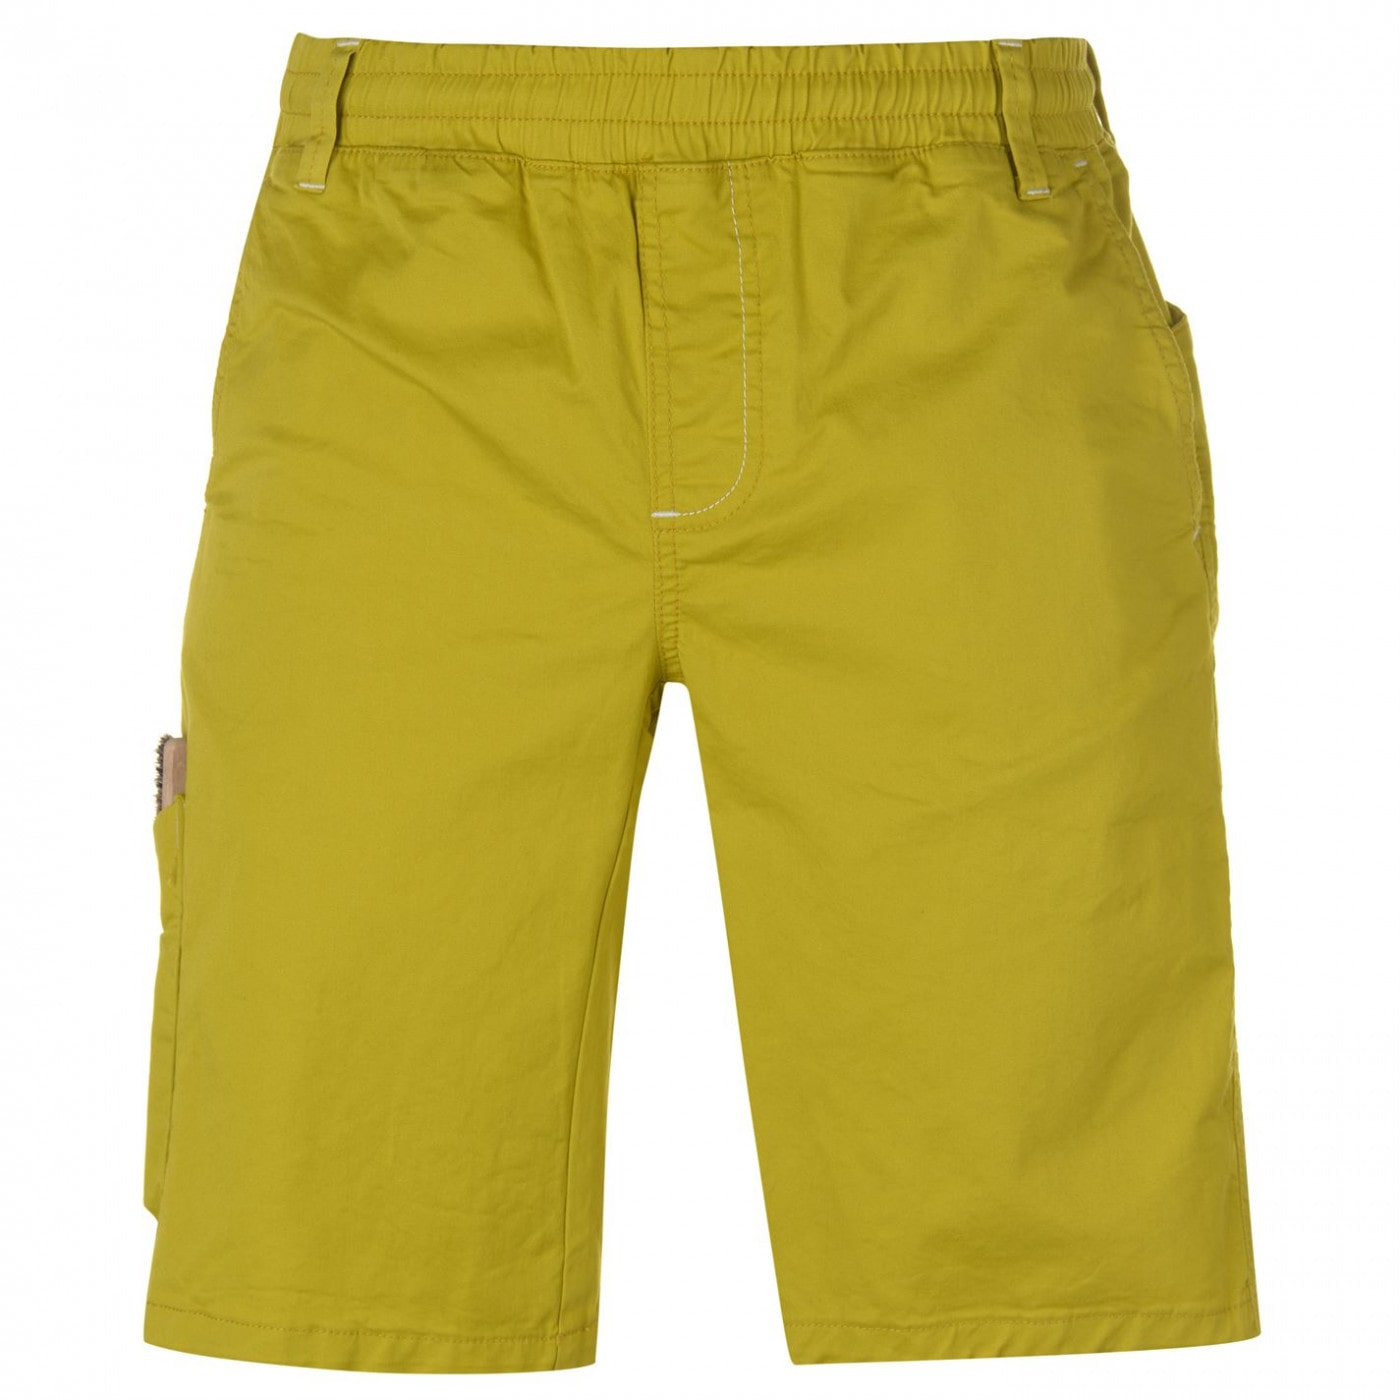 Chillaz Neo Climbing Shorts Mens